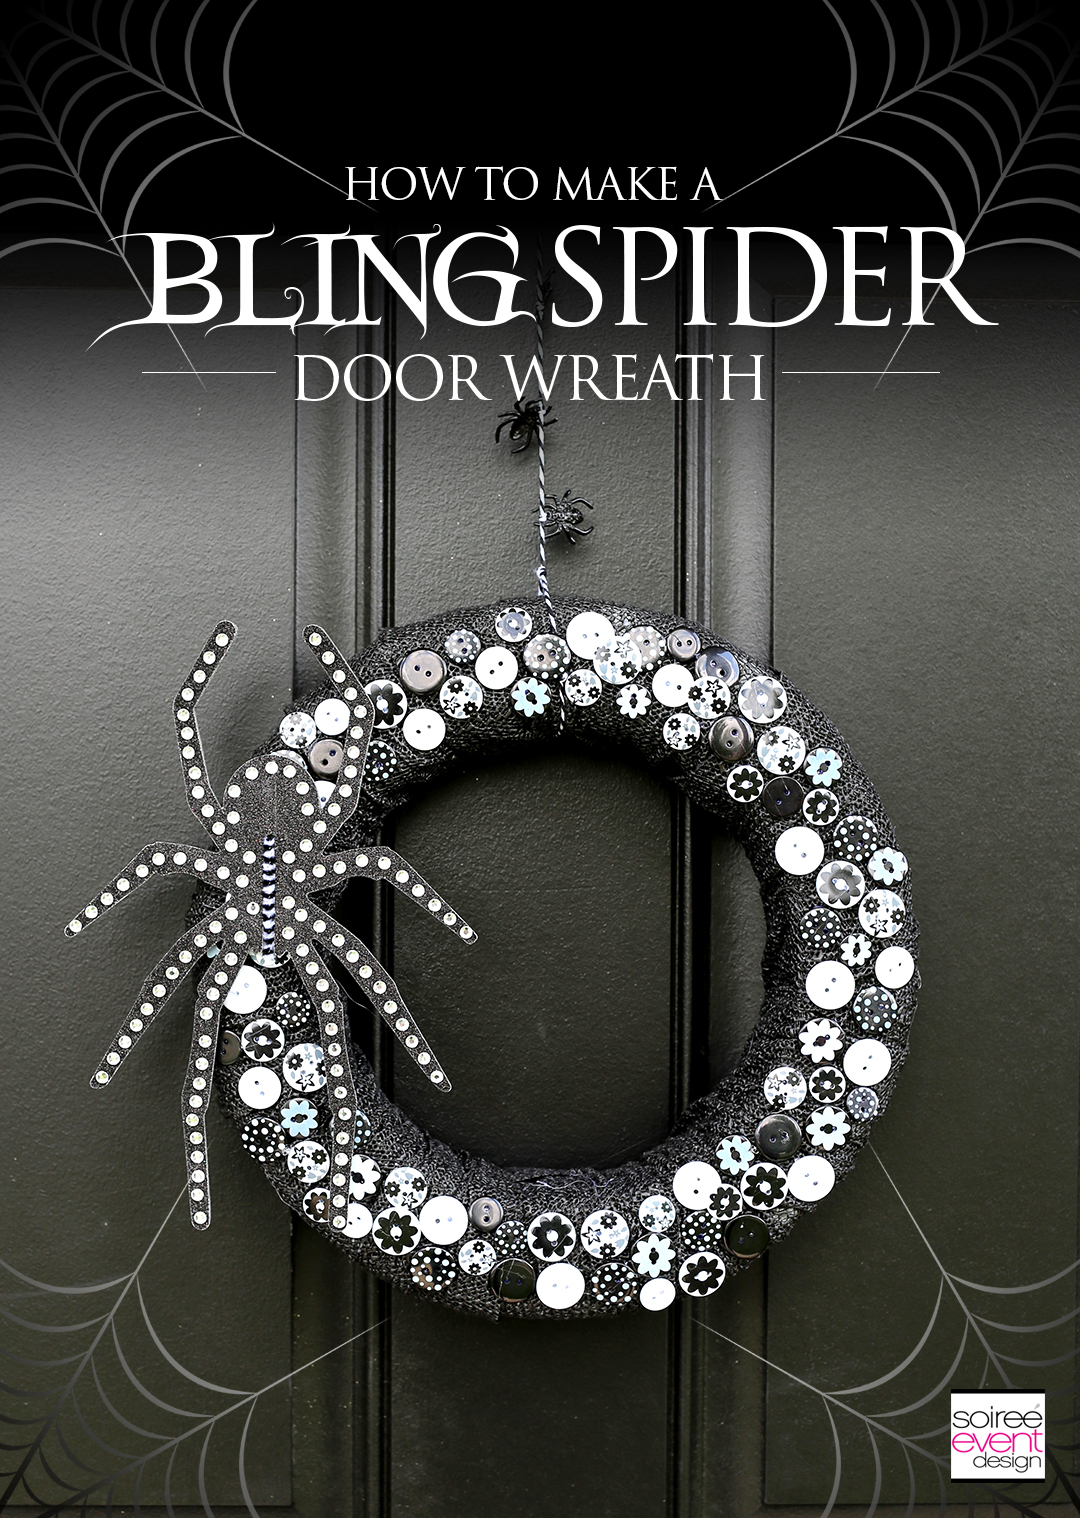 How To Make A Bling Spider Halloween Wreath Soiree Event